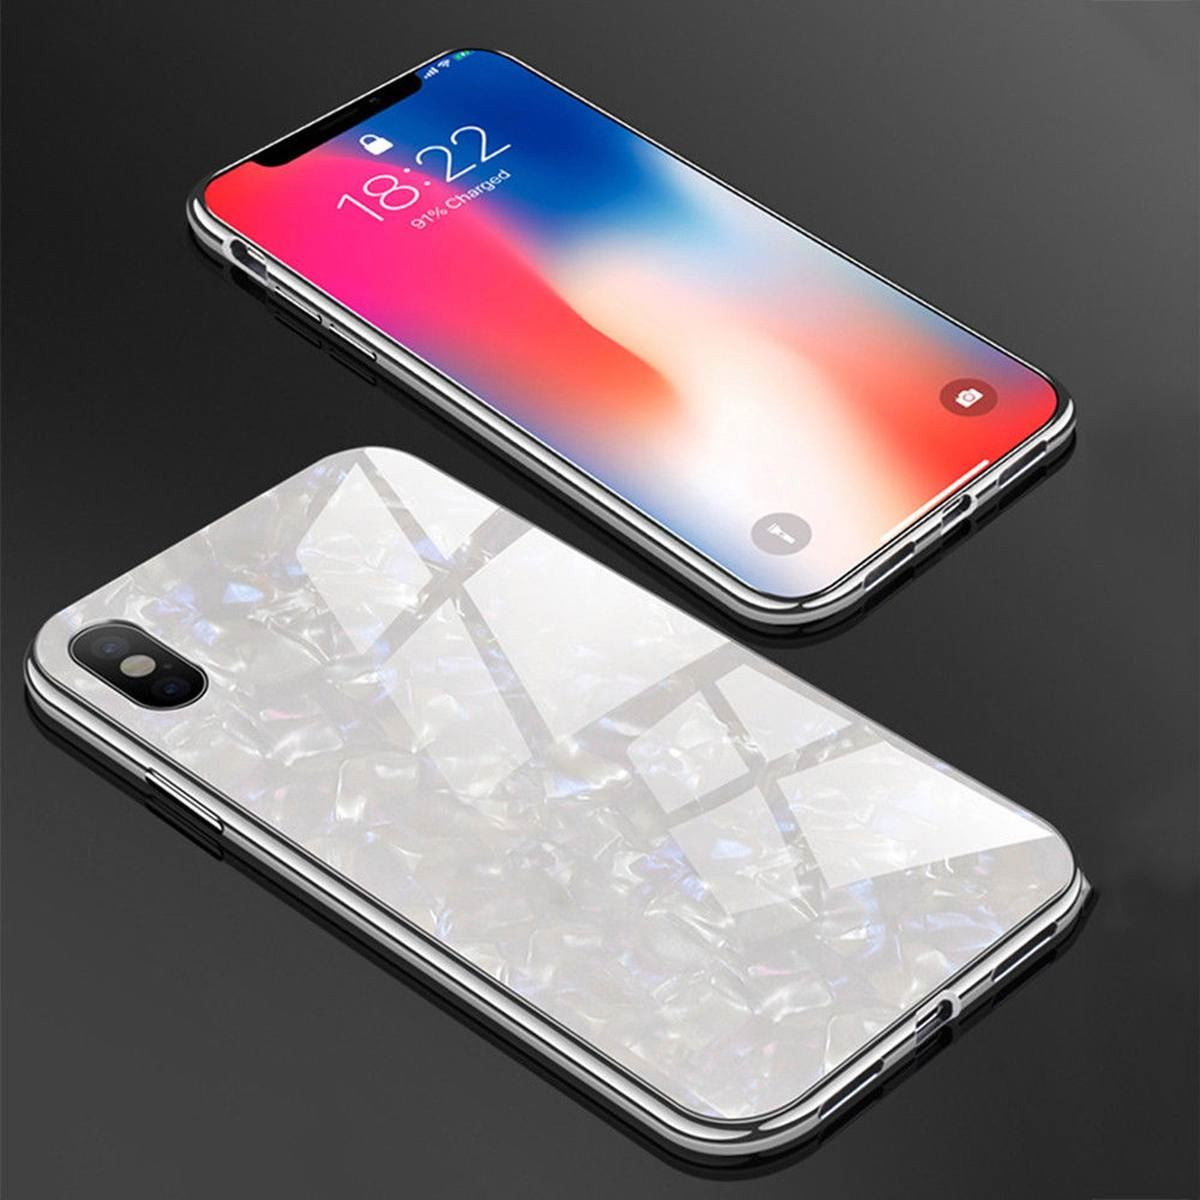 Luxury-Marble-Tempered-Glass-Case-Cover-For-Apple-iPhone-X-XS-XR-Max-10-8-7-6s-6 thumbnail 62